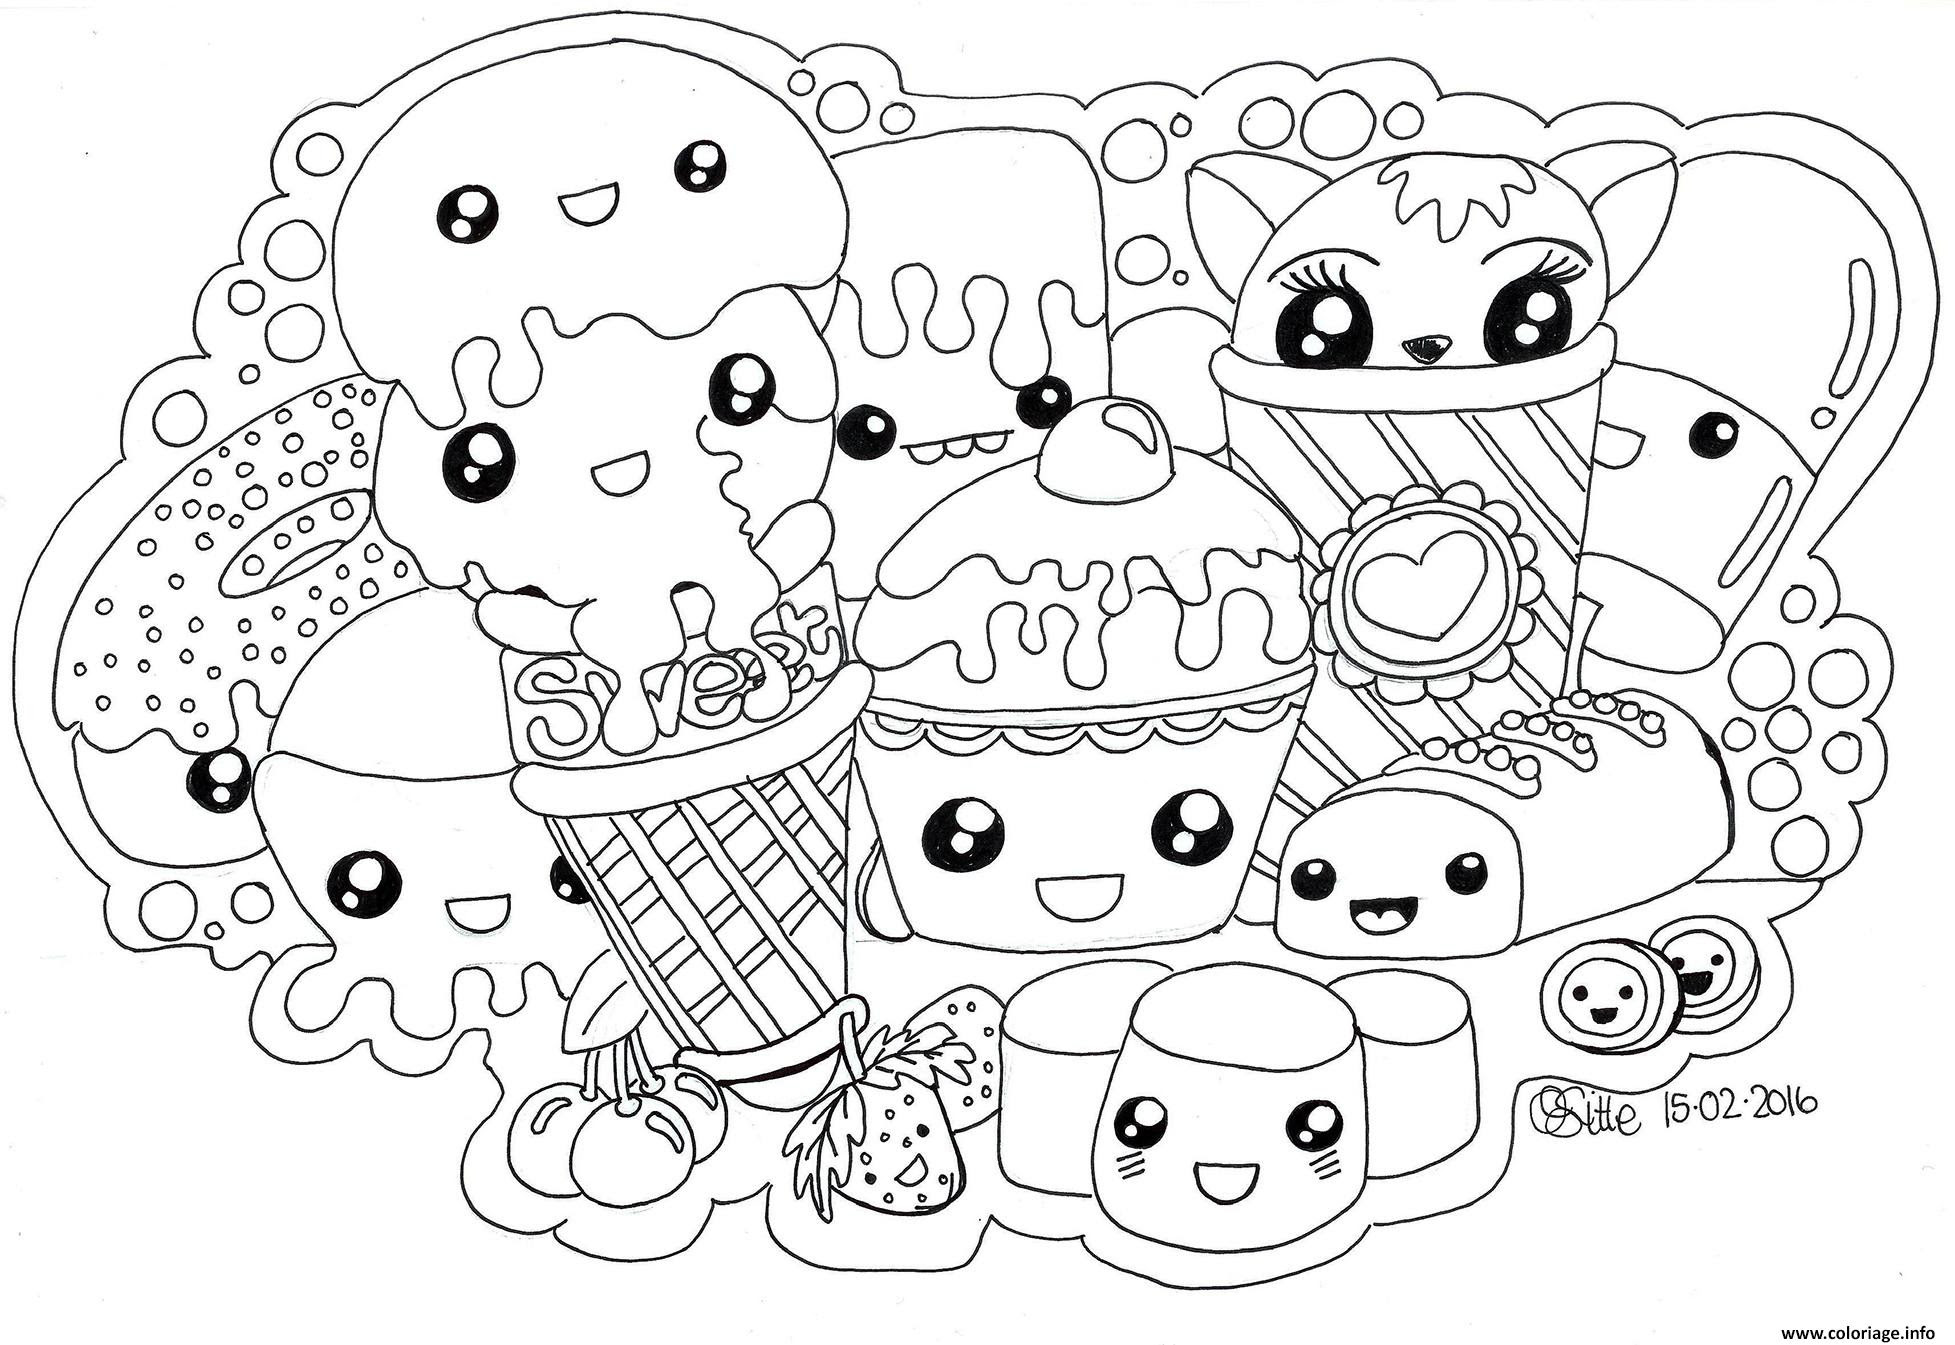 Coloriage Kawaii Sweets Colour Manga Cute Dessin Imprimer